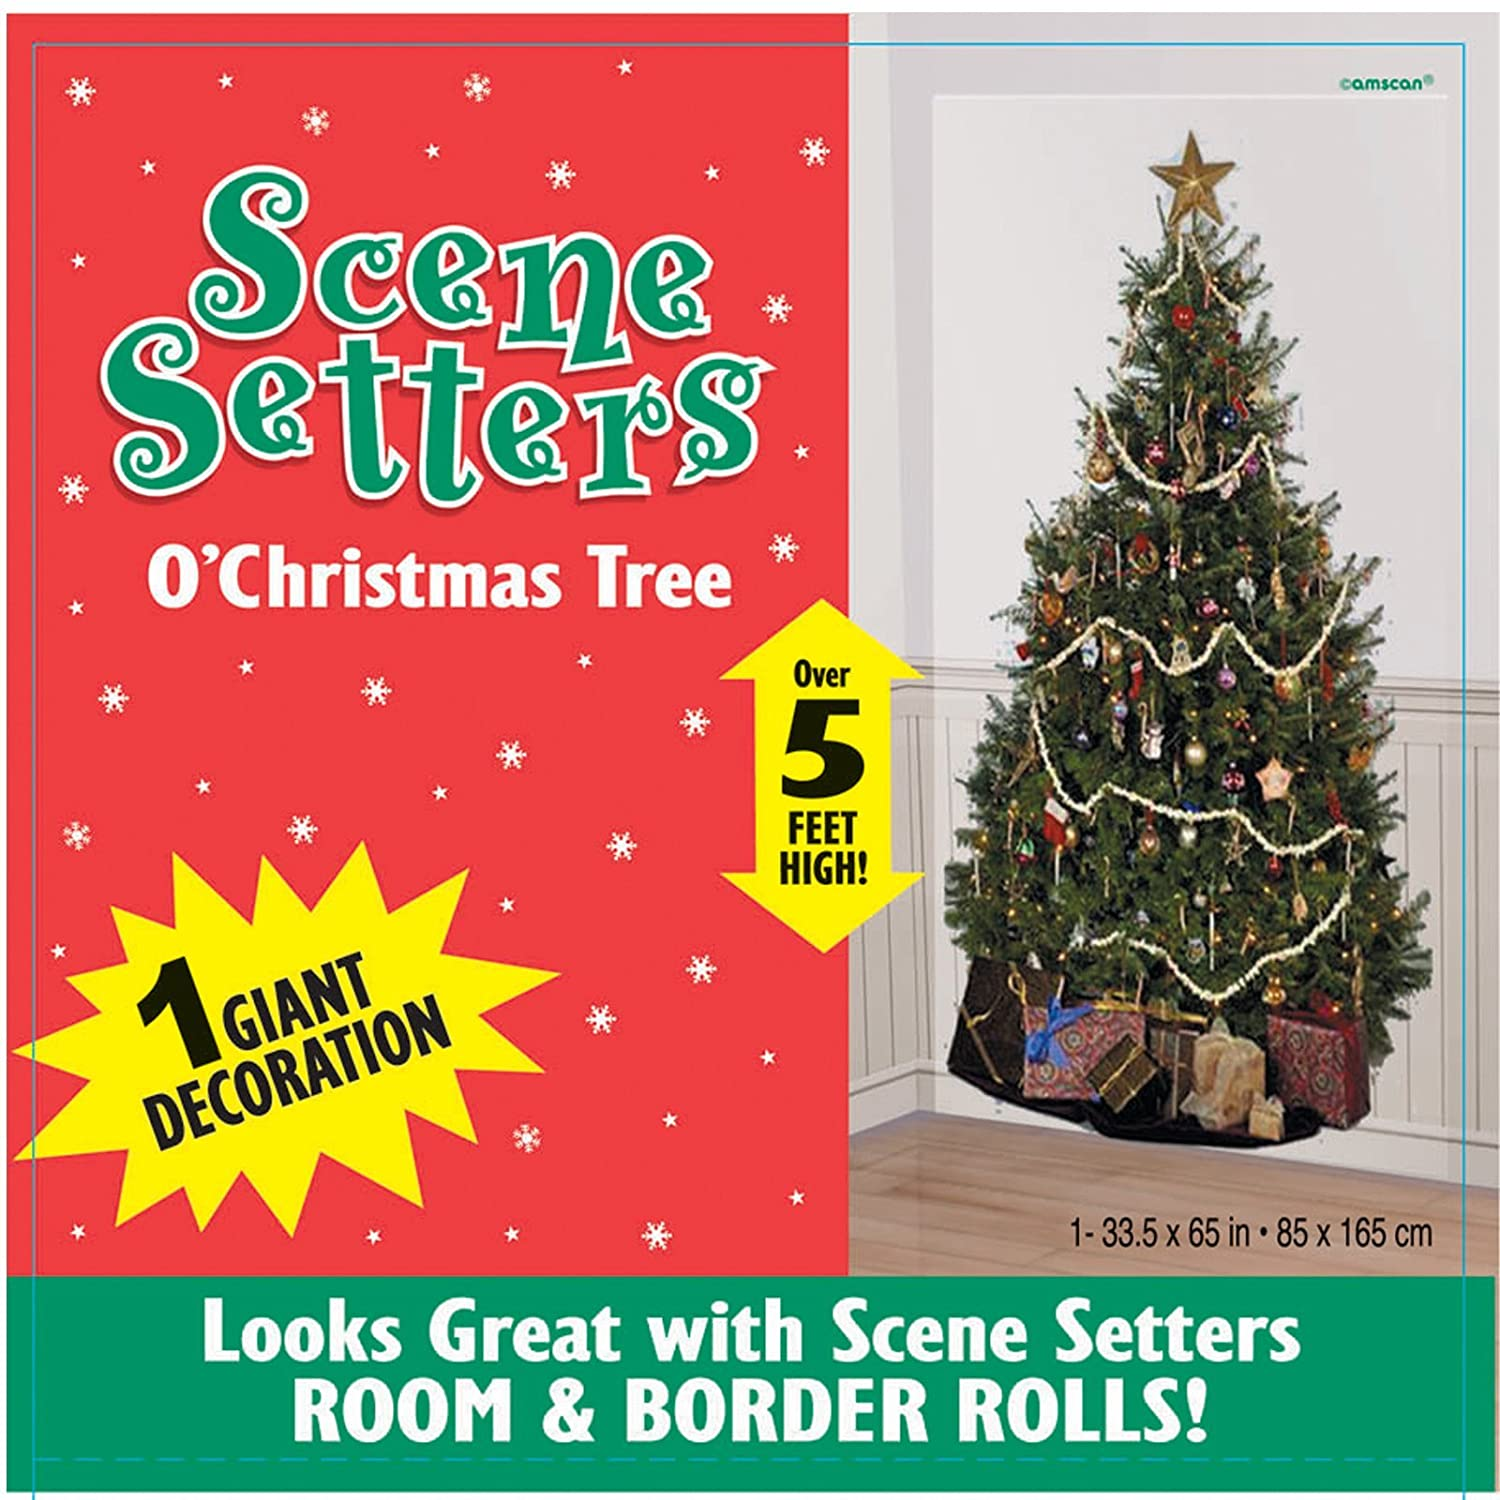 Amazon.com: Amscan Scene Setter - O Christmas Tree: Home Improvement